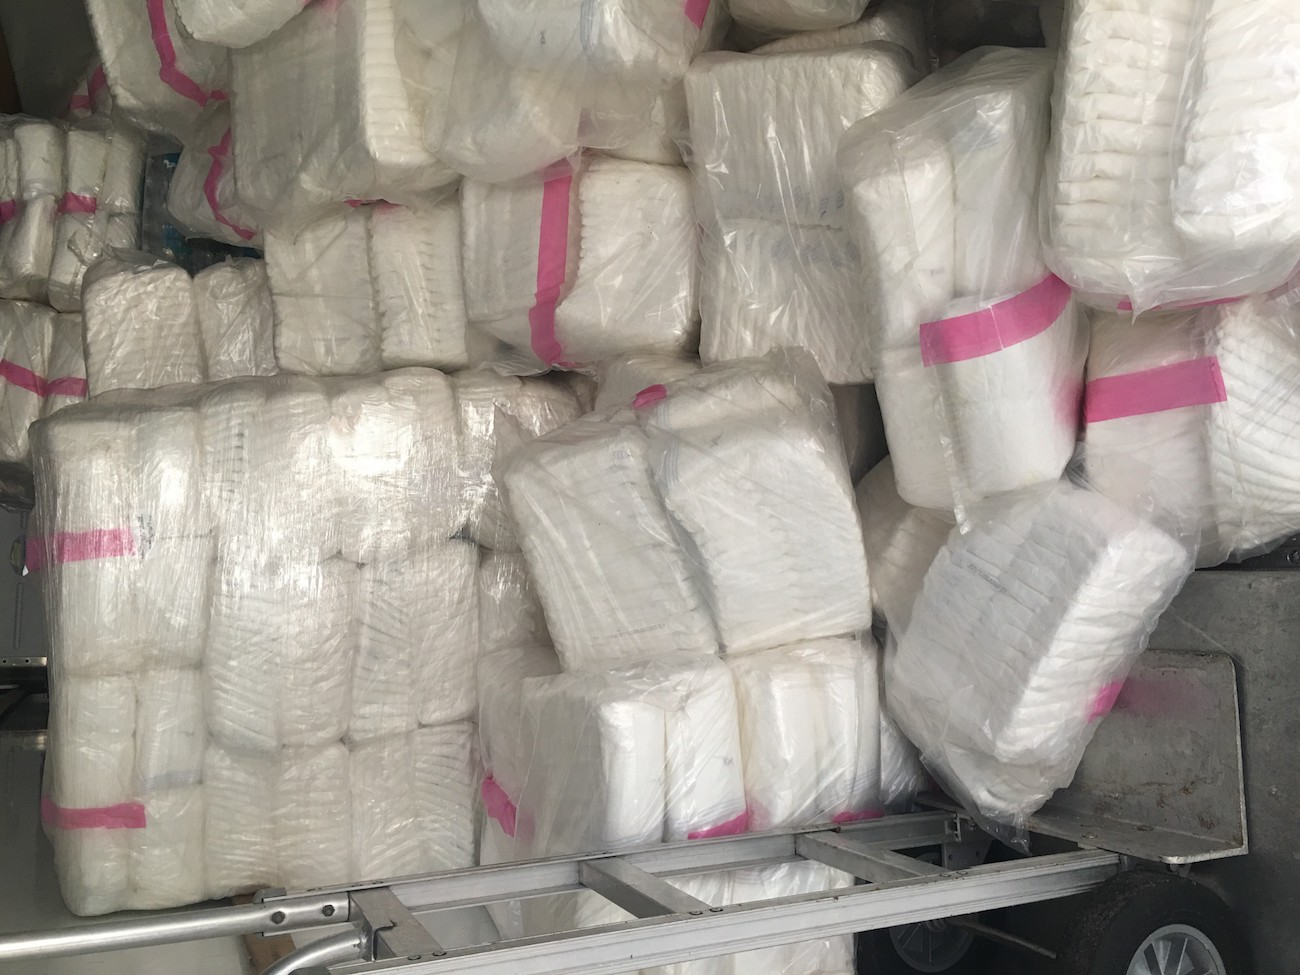 Aereos - A truck load of adult diapers loaded up on Friday morning by Aereos relief workers.